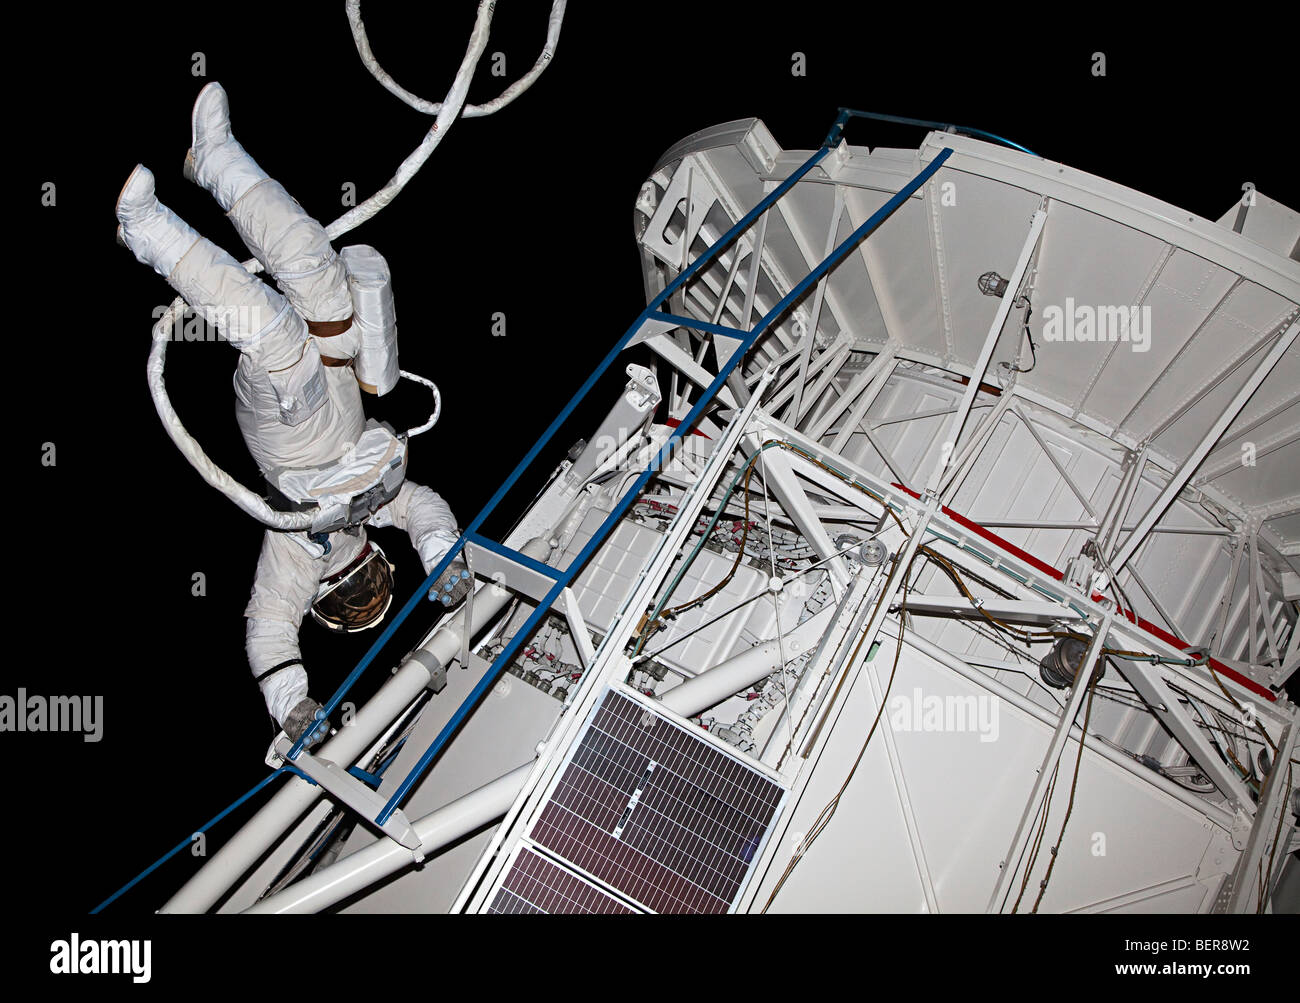 Astronaut on space walk outside space lab in museum exhibit NASA Space Center Houston Texas USA - Stock Image